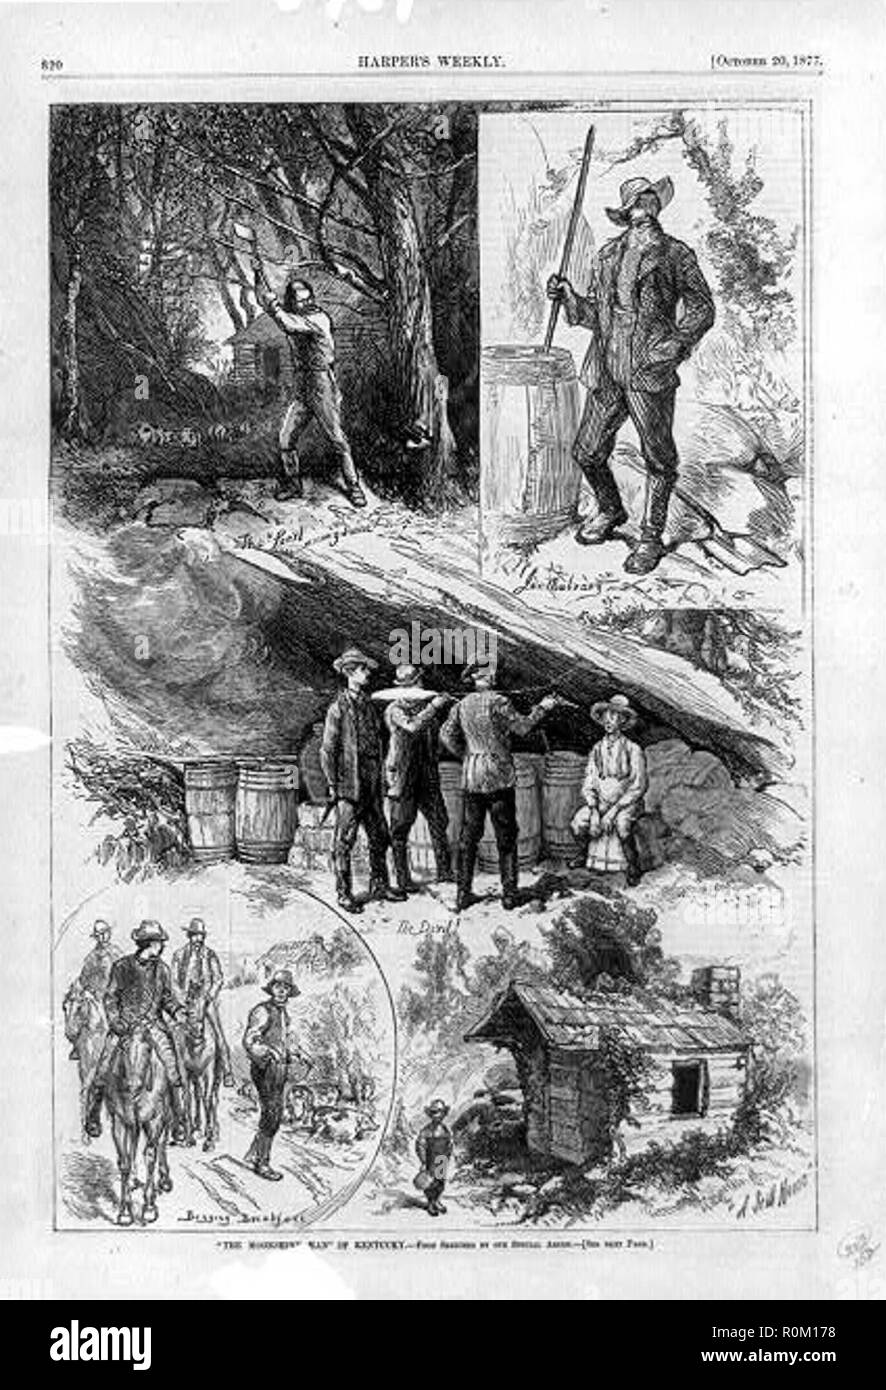 The Moonshine Man of Kentucky, an illustration from Harper's Weekly, 1877, showing five scenes from the life of a Kentucky moonshiner. - Stock Image